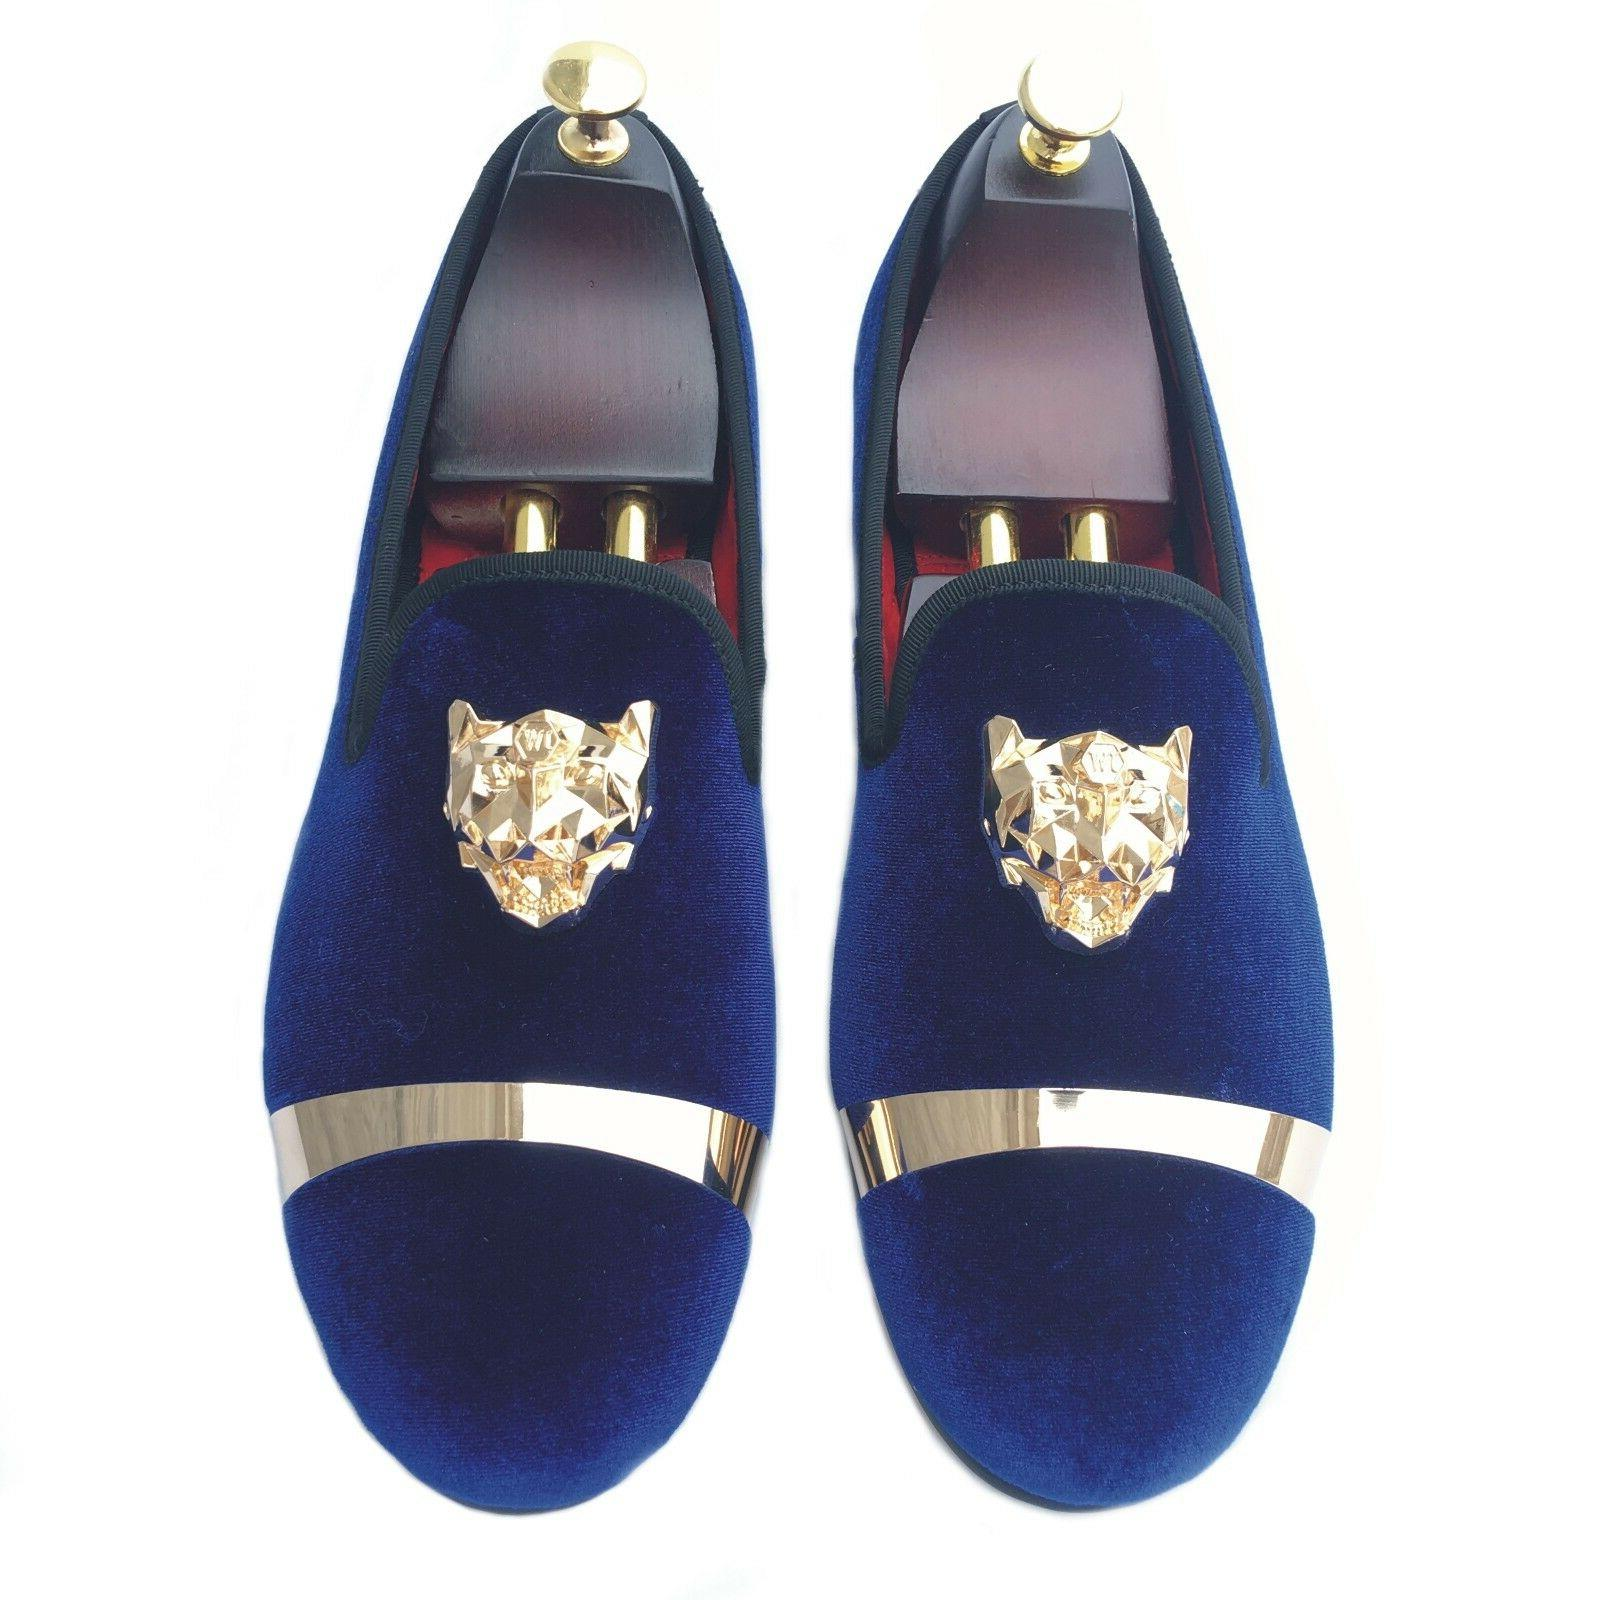 Handmade Mens Slippers with Wedding Dress Shoes